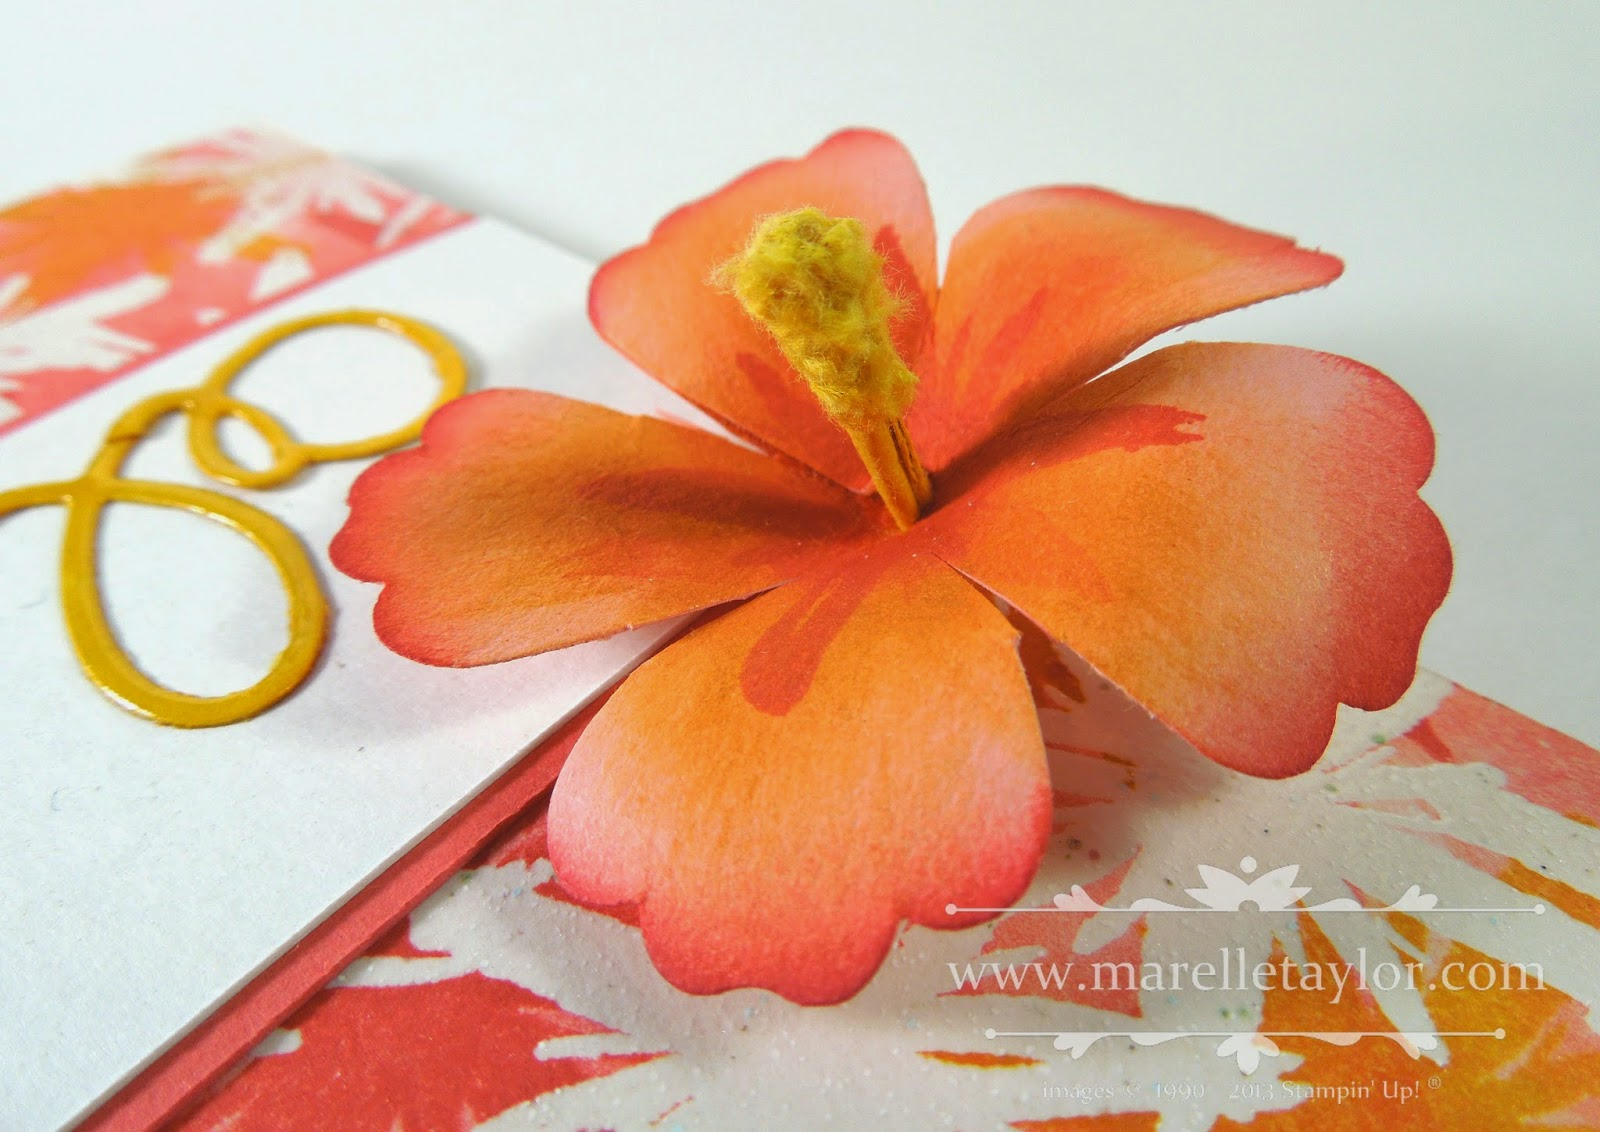 Marelle taylor stampin up demonstrator sydney australia hawaii i used the blossom punch to punch a flower from crisp cantaloupe cardstock and snipped down each petal to separate them a bit more and then overlapped two izmirmasajfo